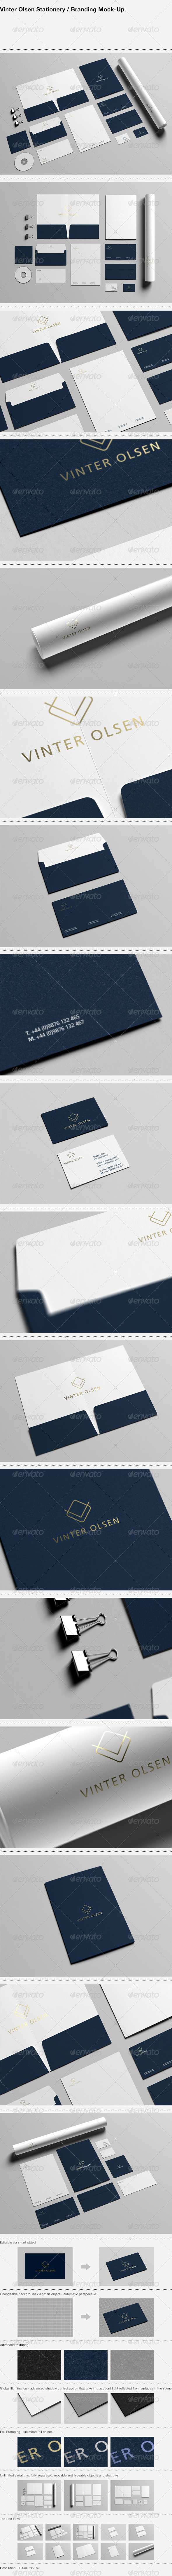 Stationery / Branding Mock-Up - Vinter Olsen - Stationery Print